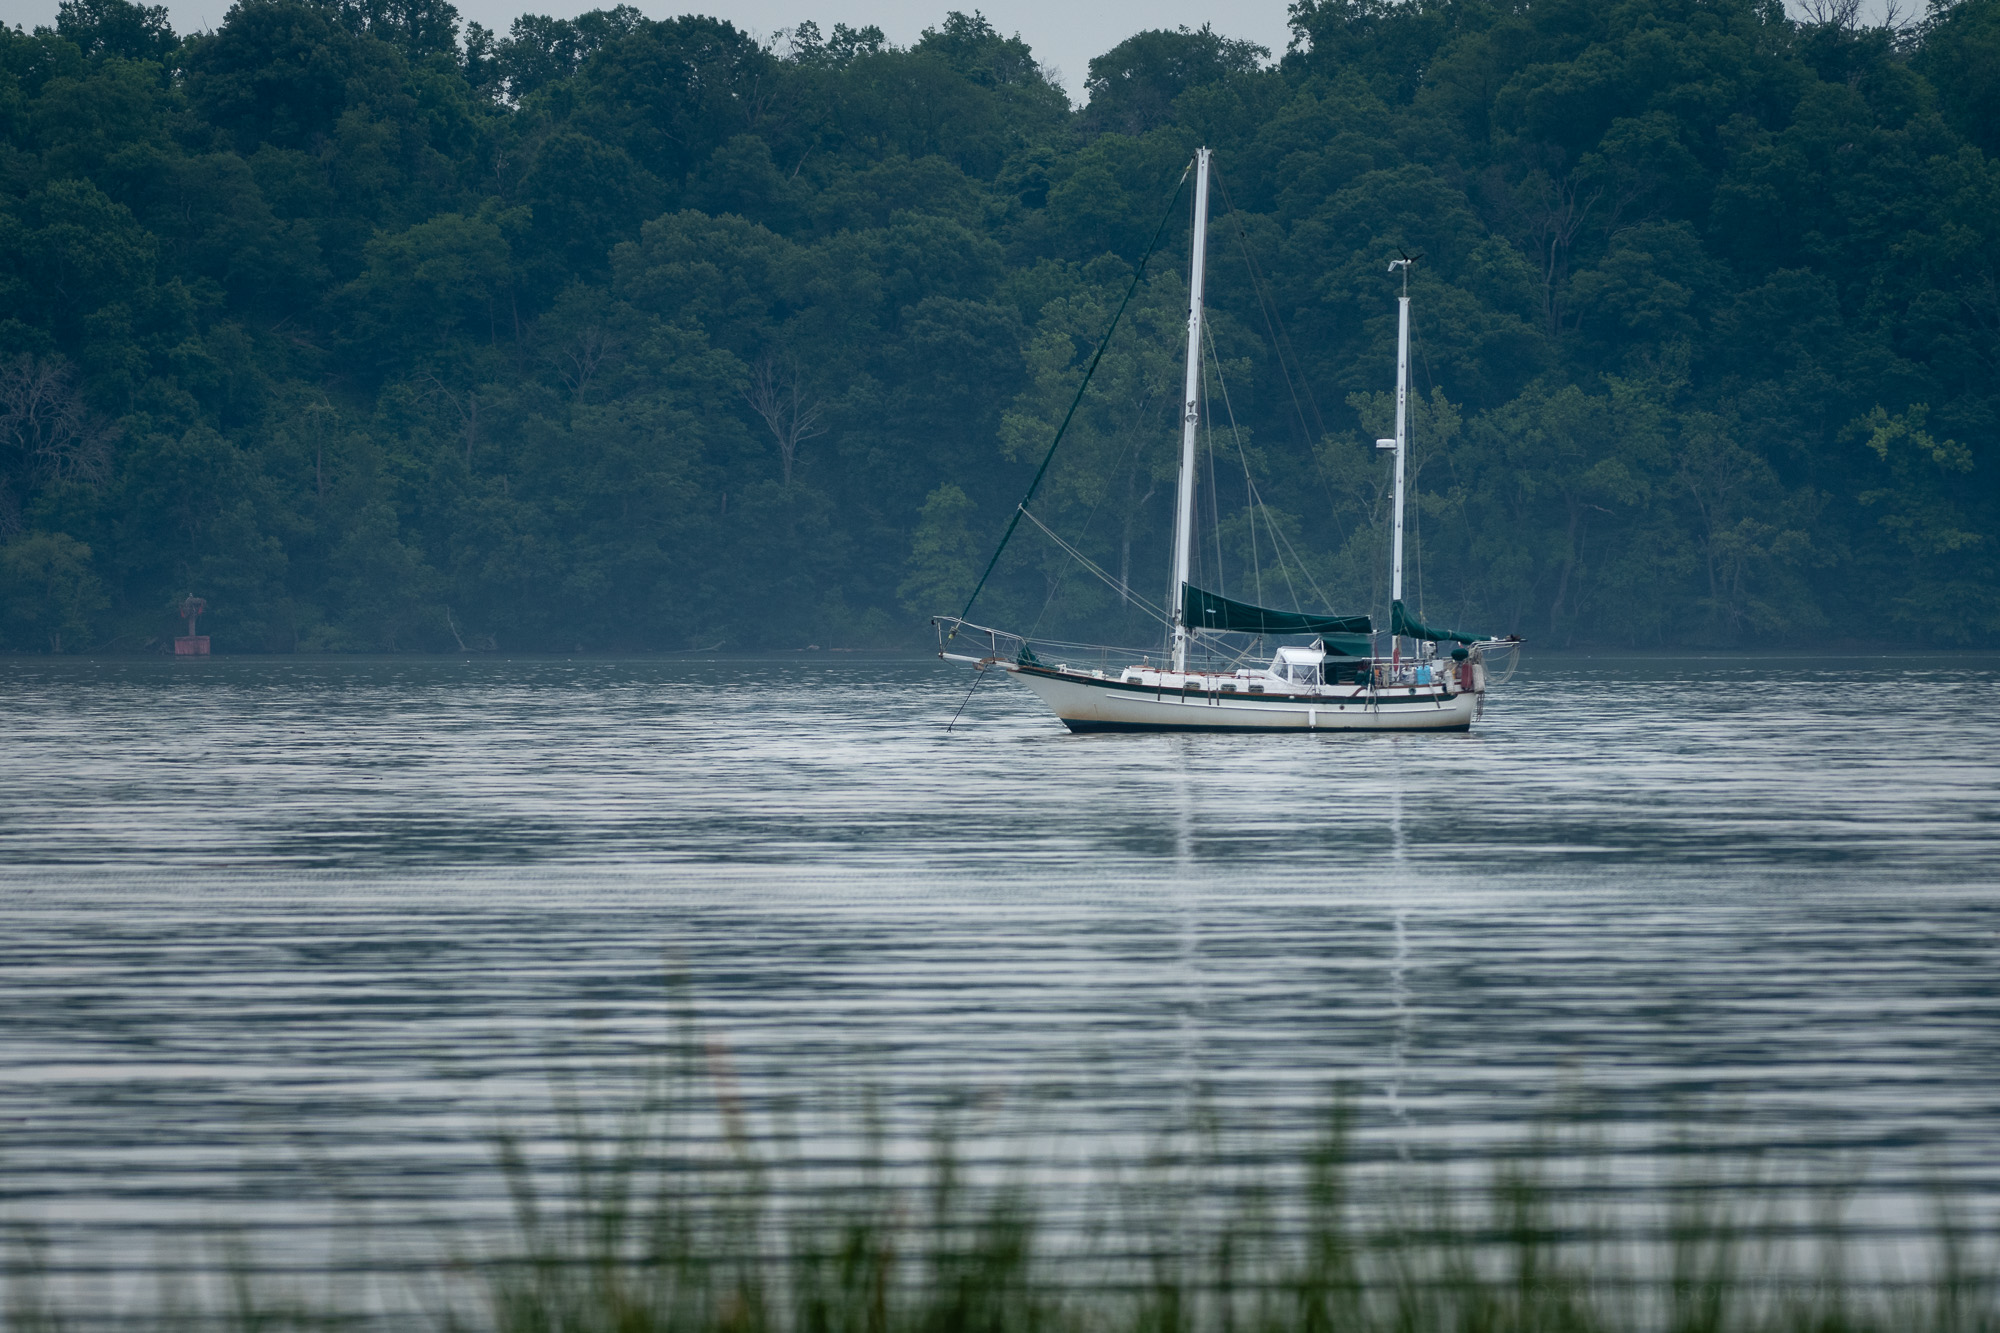 A moored sailboat on the Potomac River